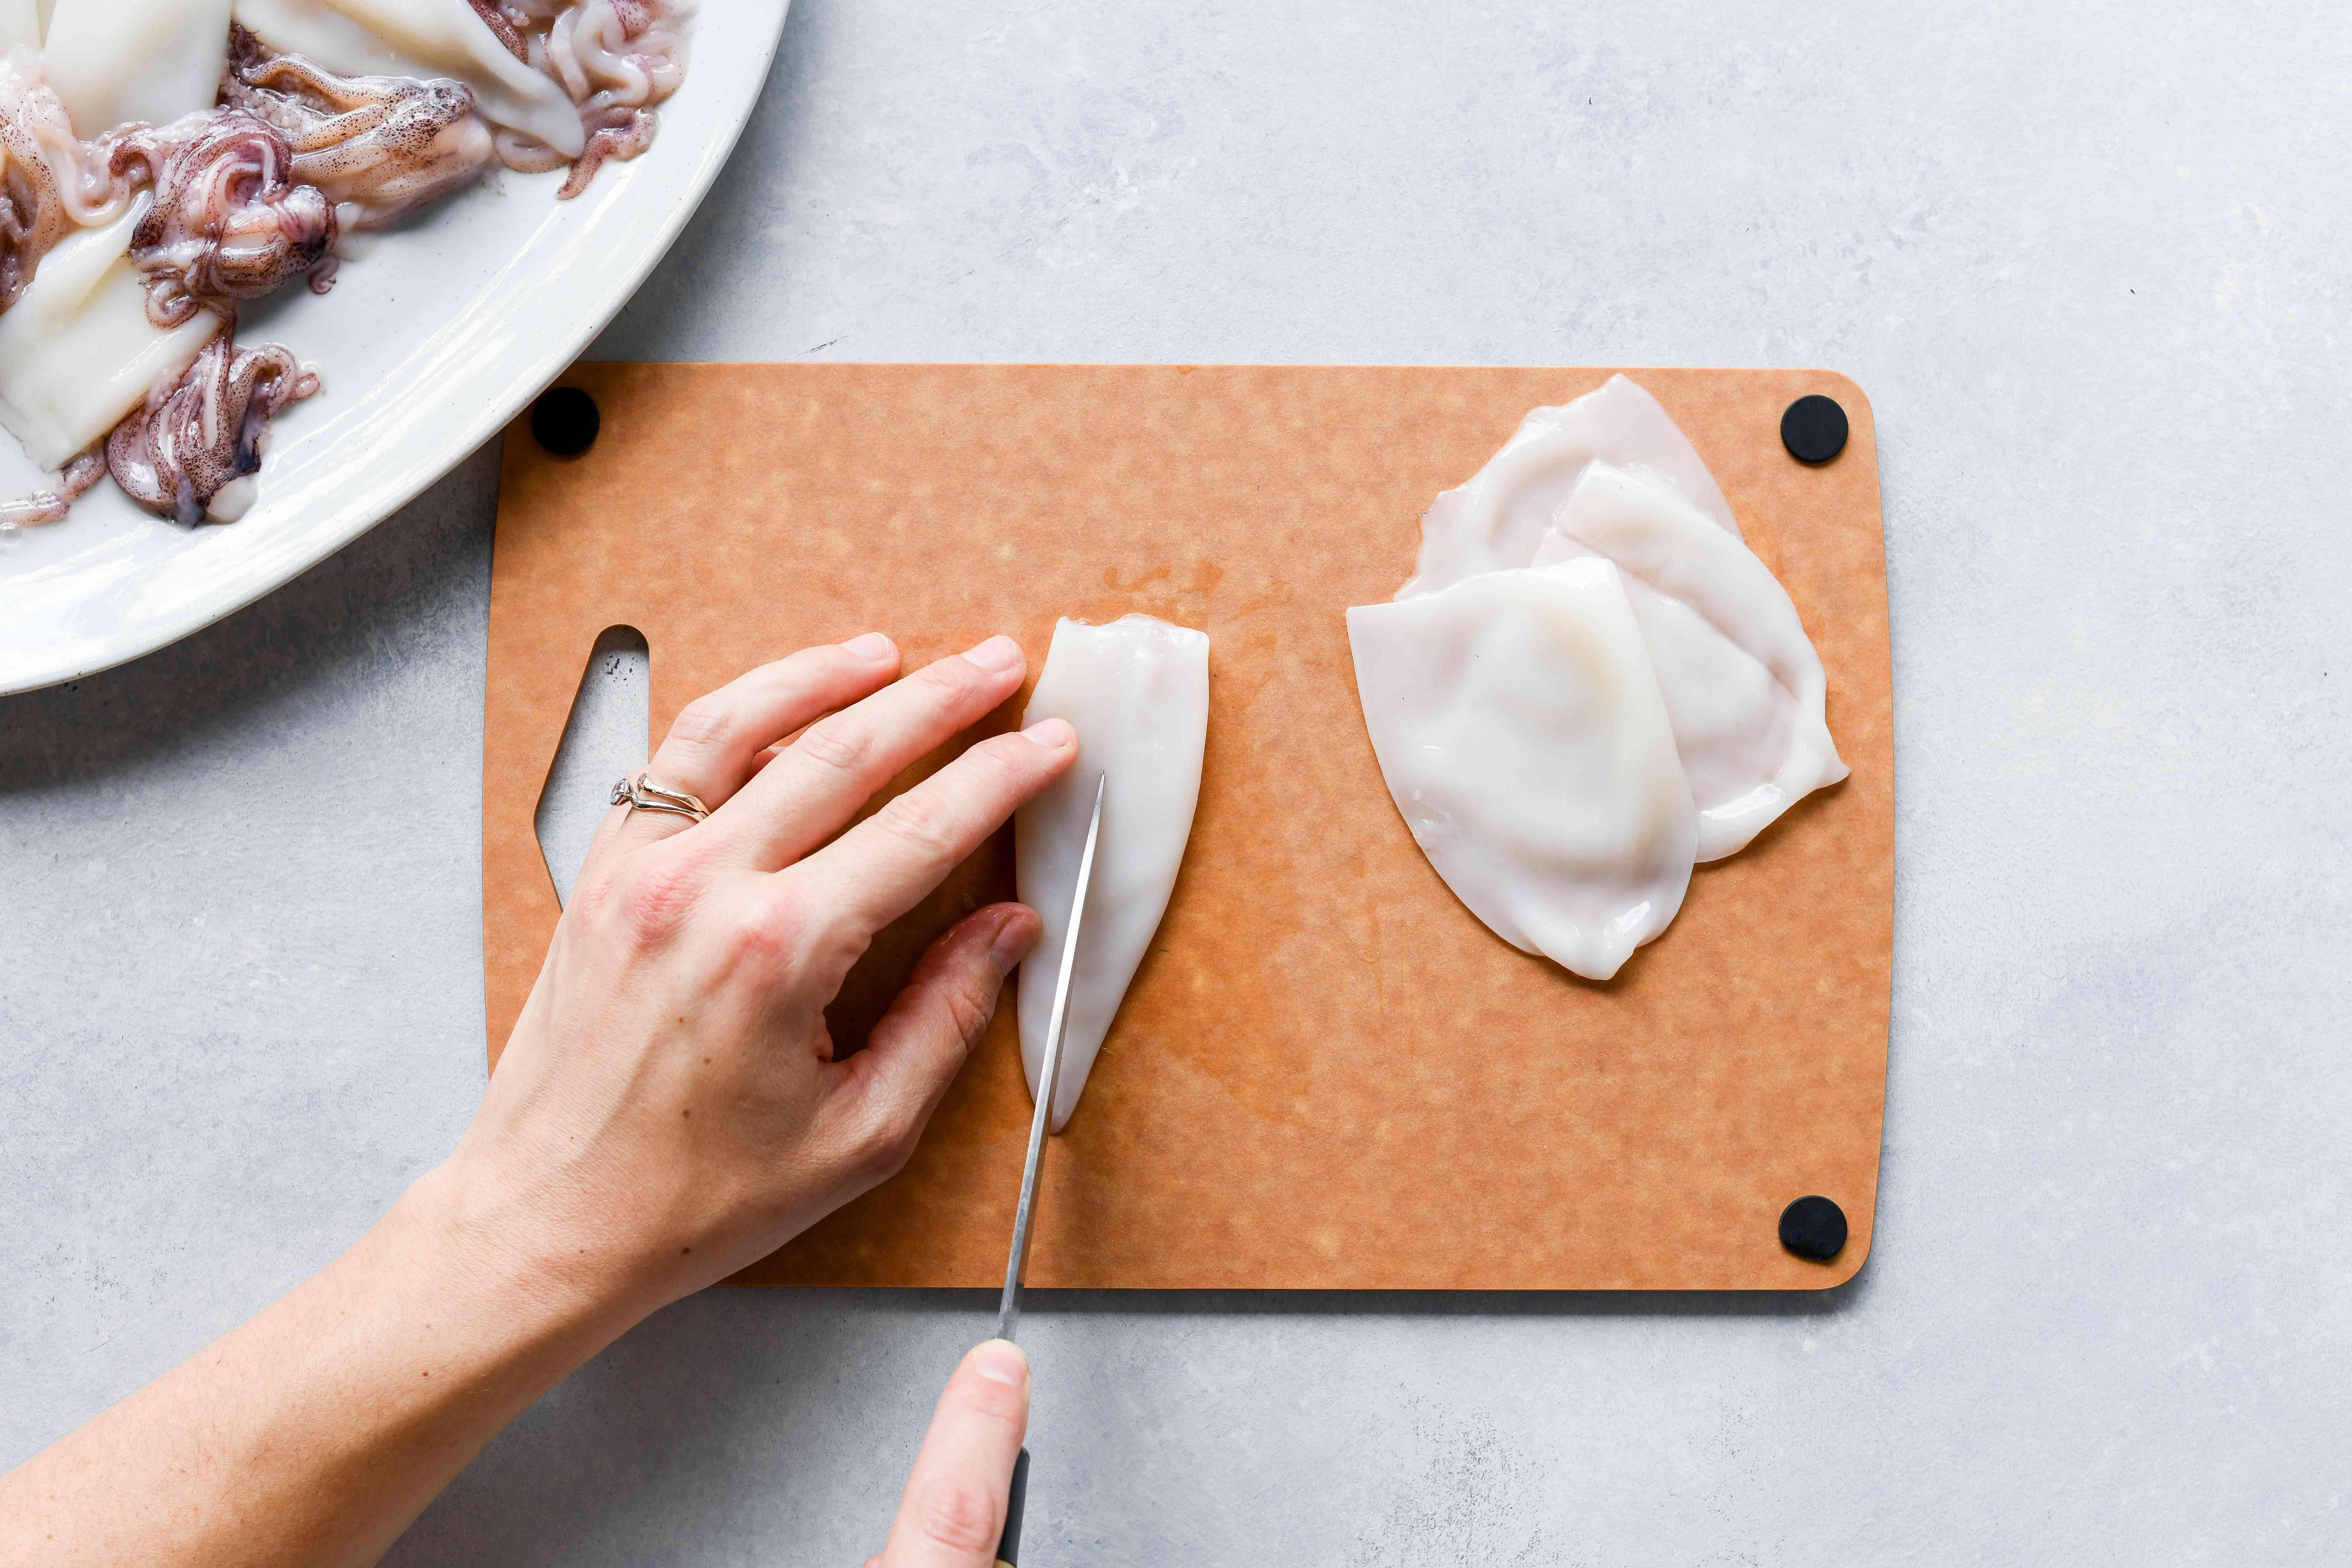 Cut squid bodies lengthwise down one side and open flat